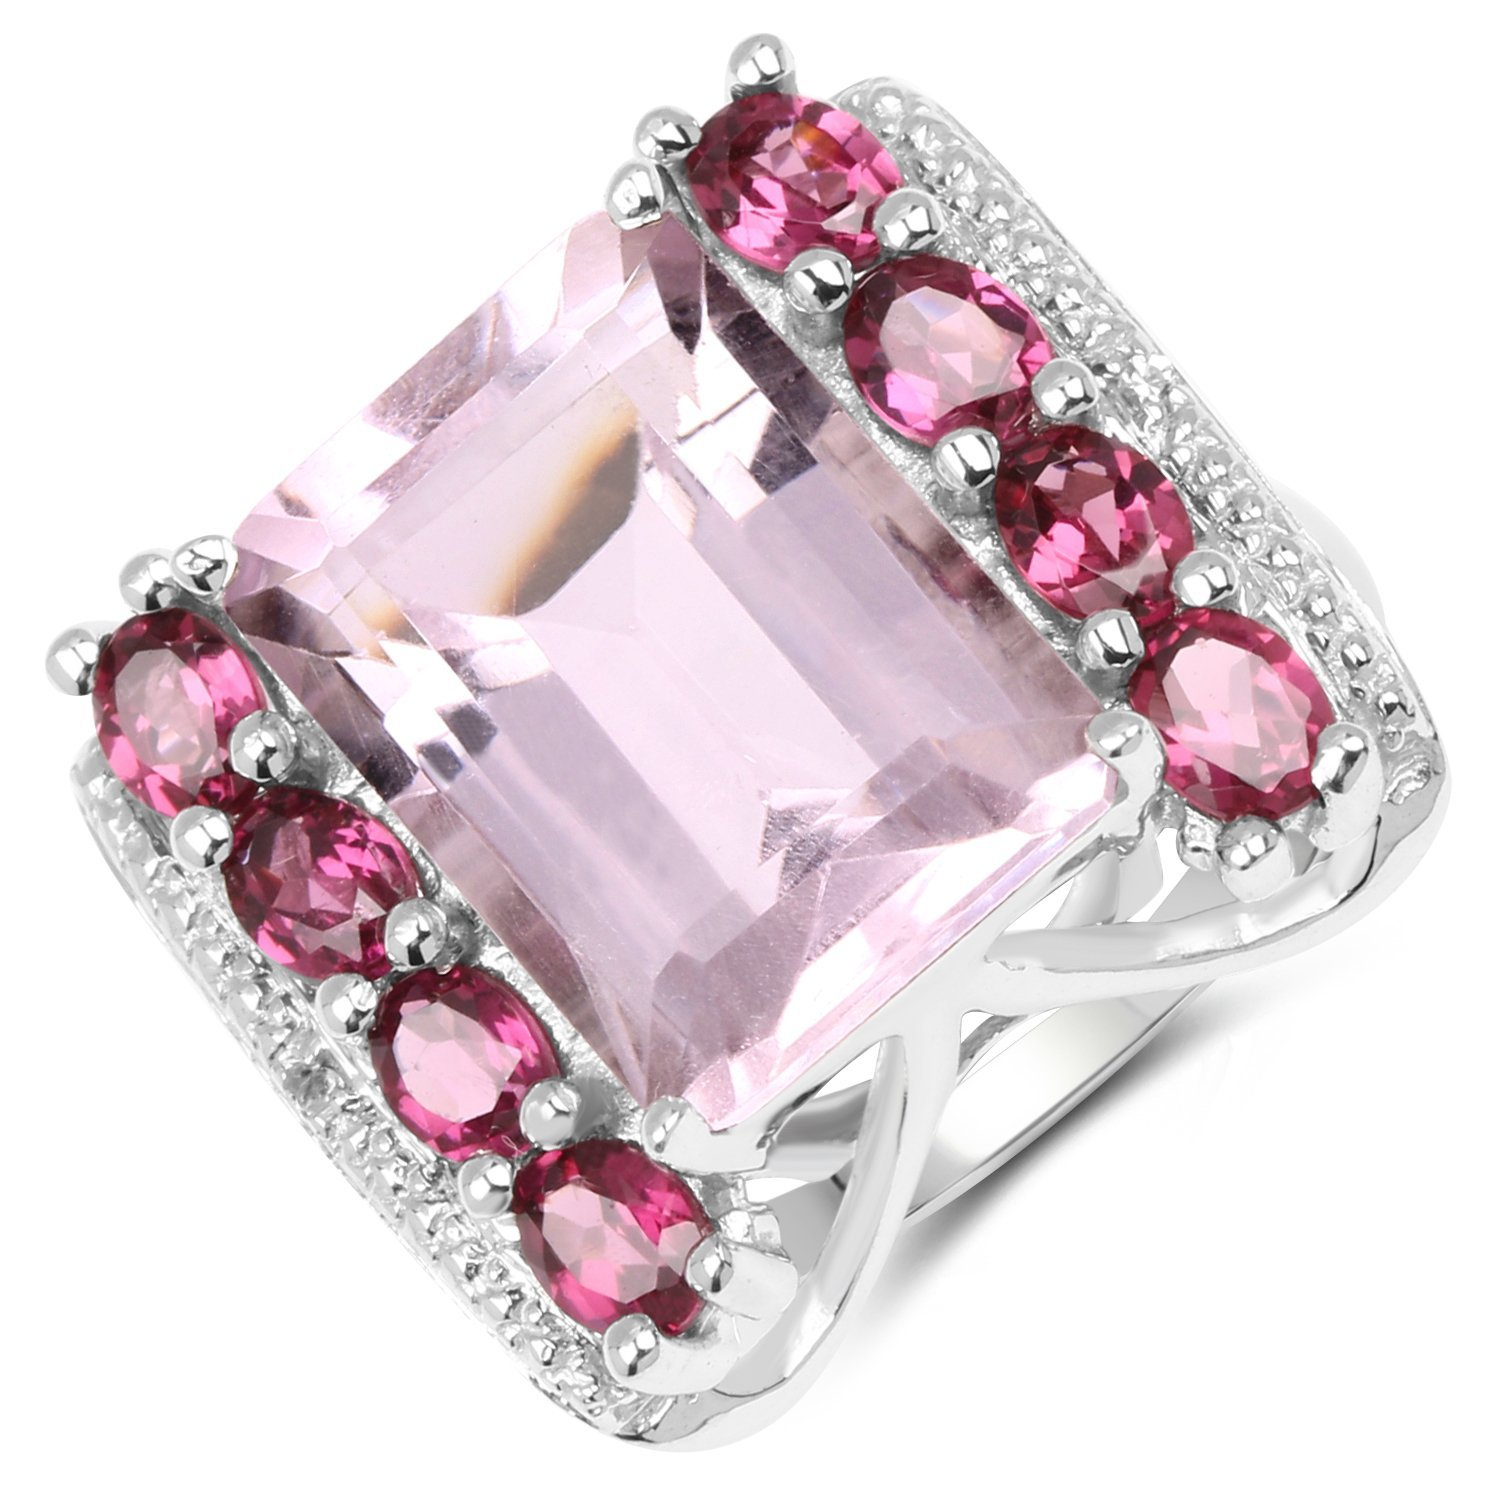 Johareez 7.88 cts Pink Amethyst Rhodolite /& White Topaz .925 Sterling Silver Rhodium Plated Ring for Women